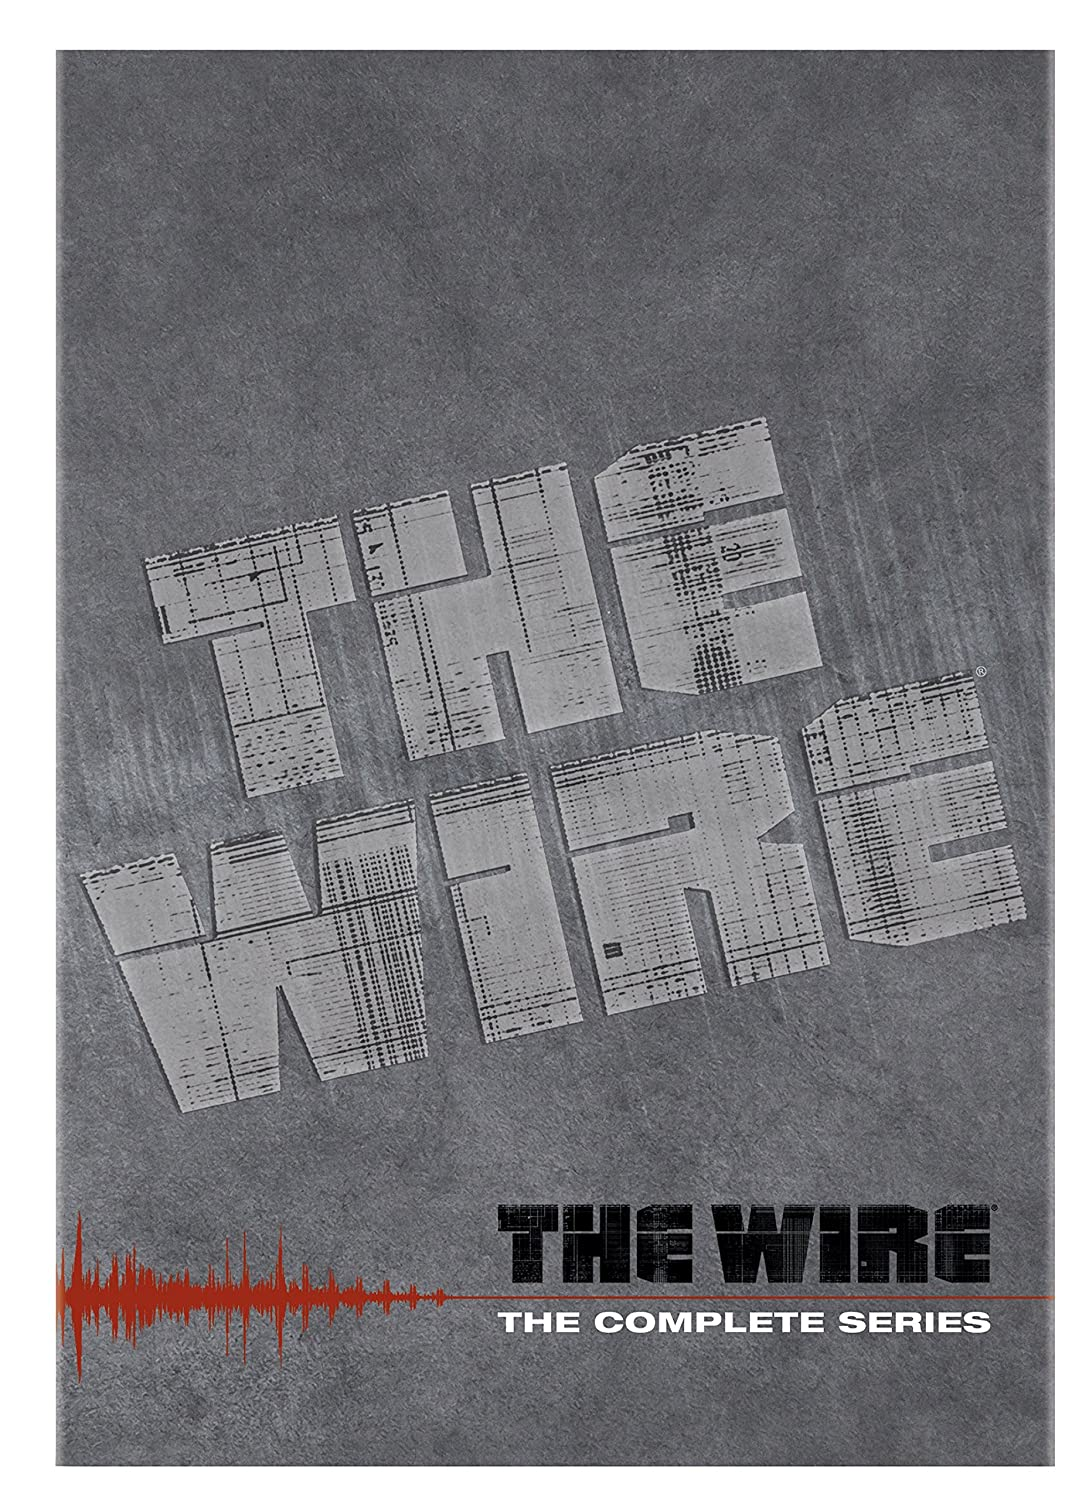 Amazon.com: The Wire: The Complete Series: Various: Movies & TV